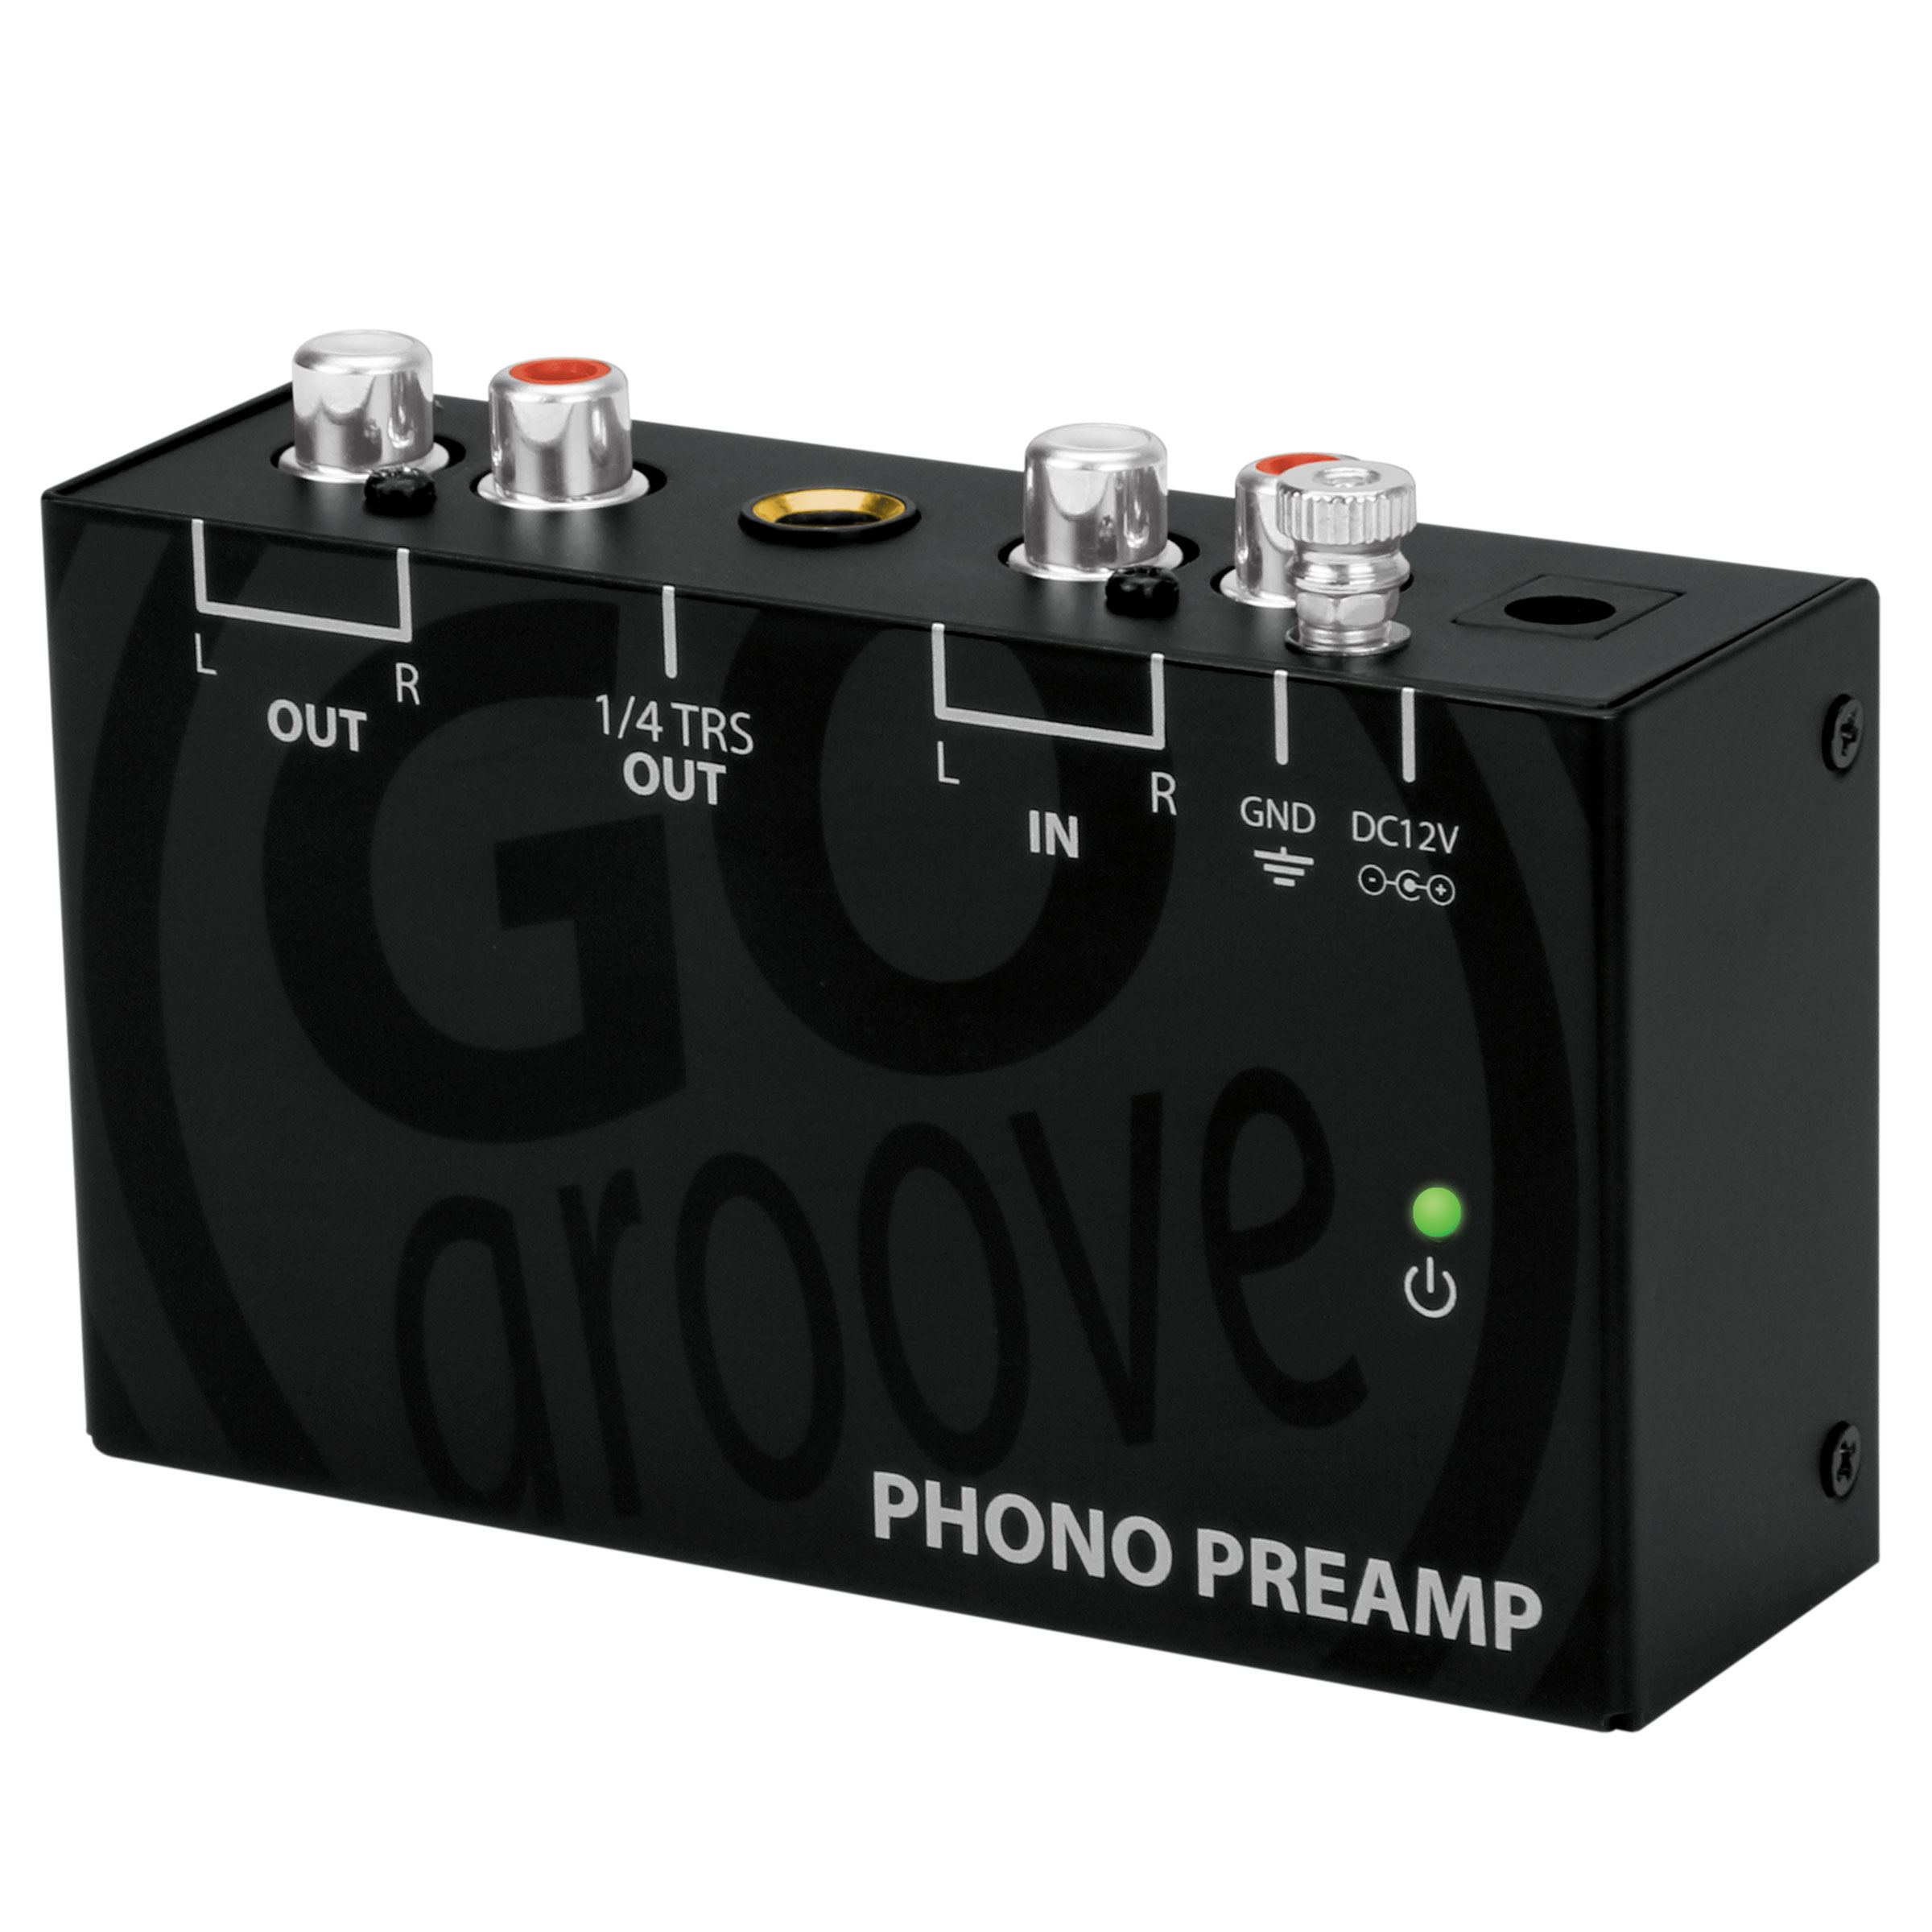 Mini Turntable Phono Preamp For Bookshelf Speakers By GOgroove Preamplifier Connects To AOMAIS Edifier